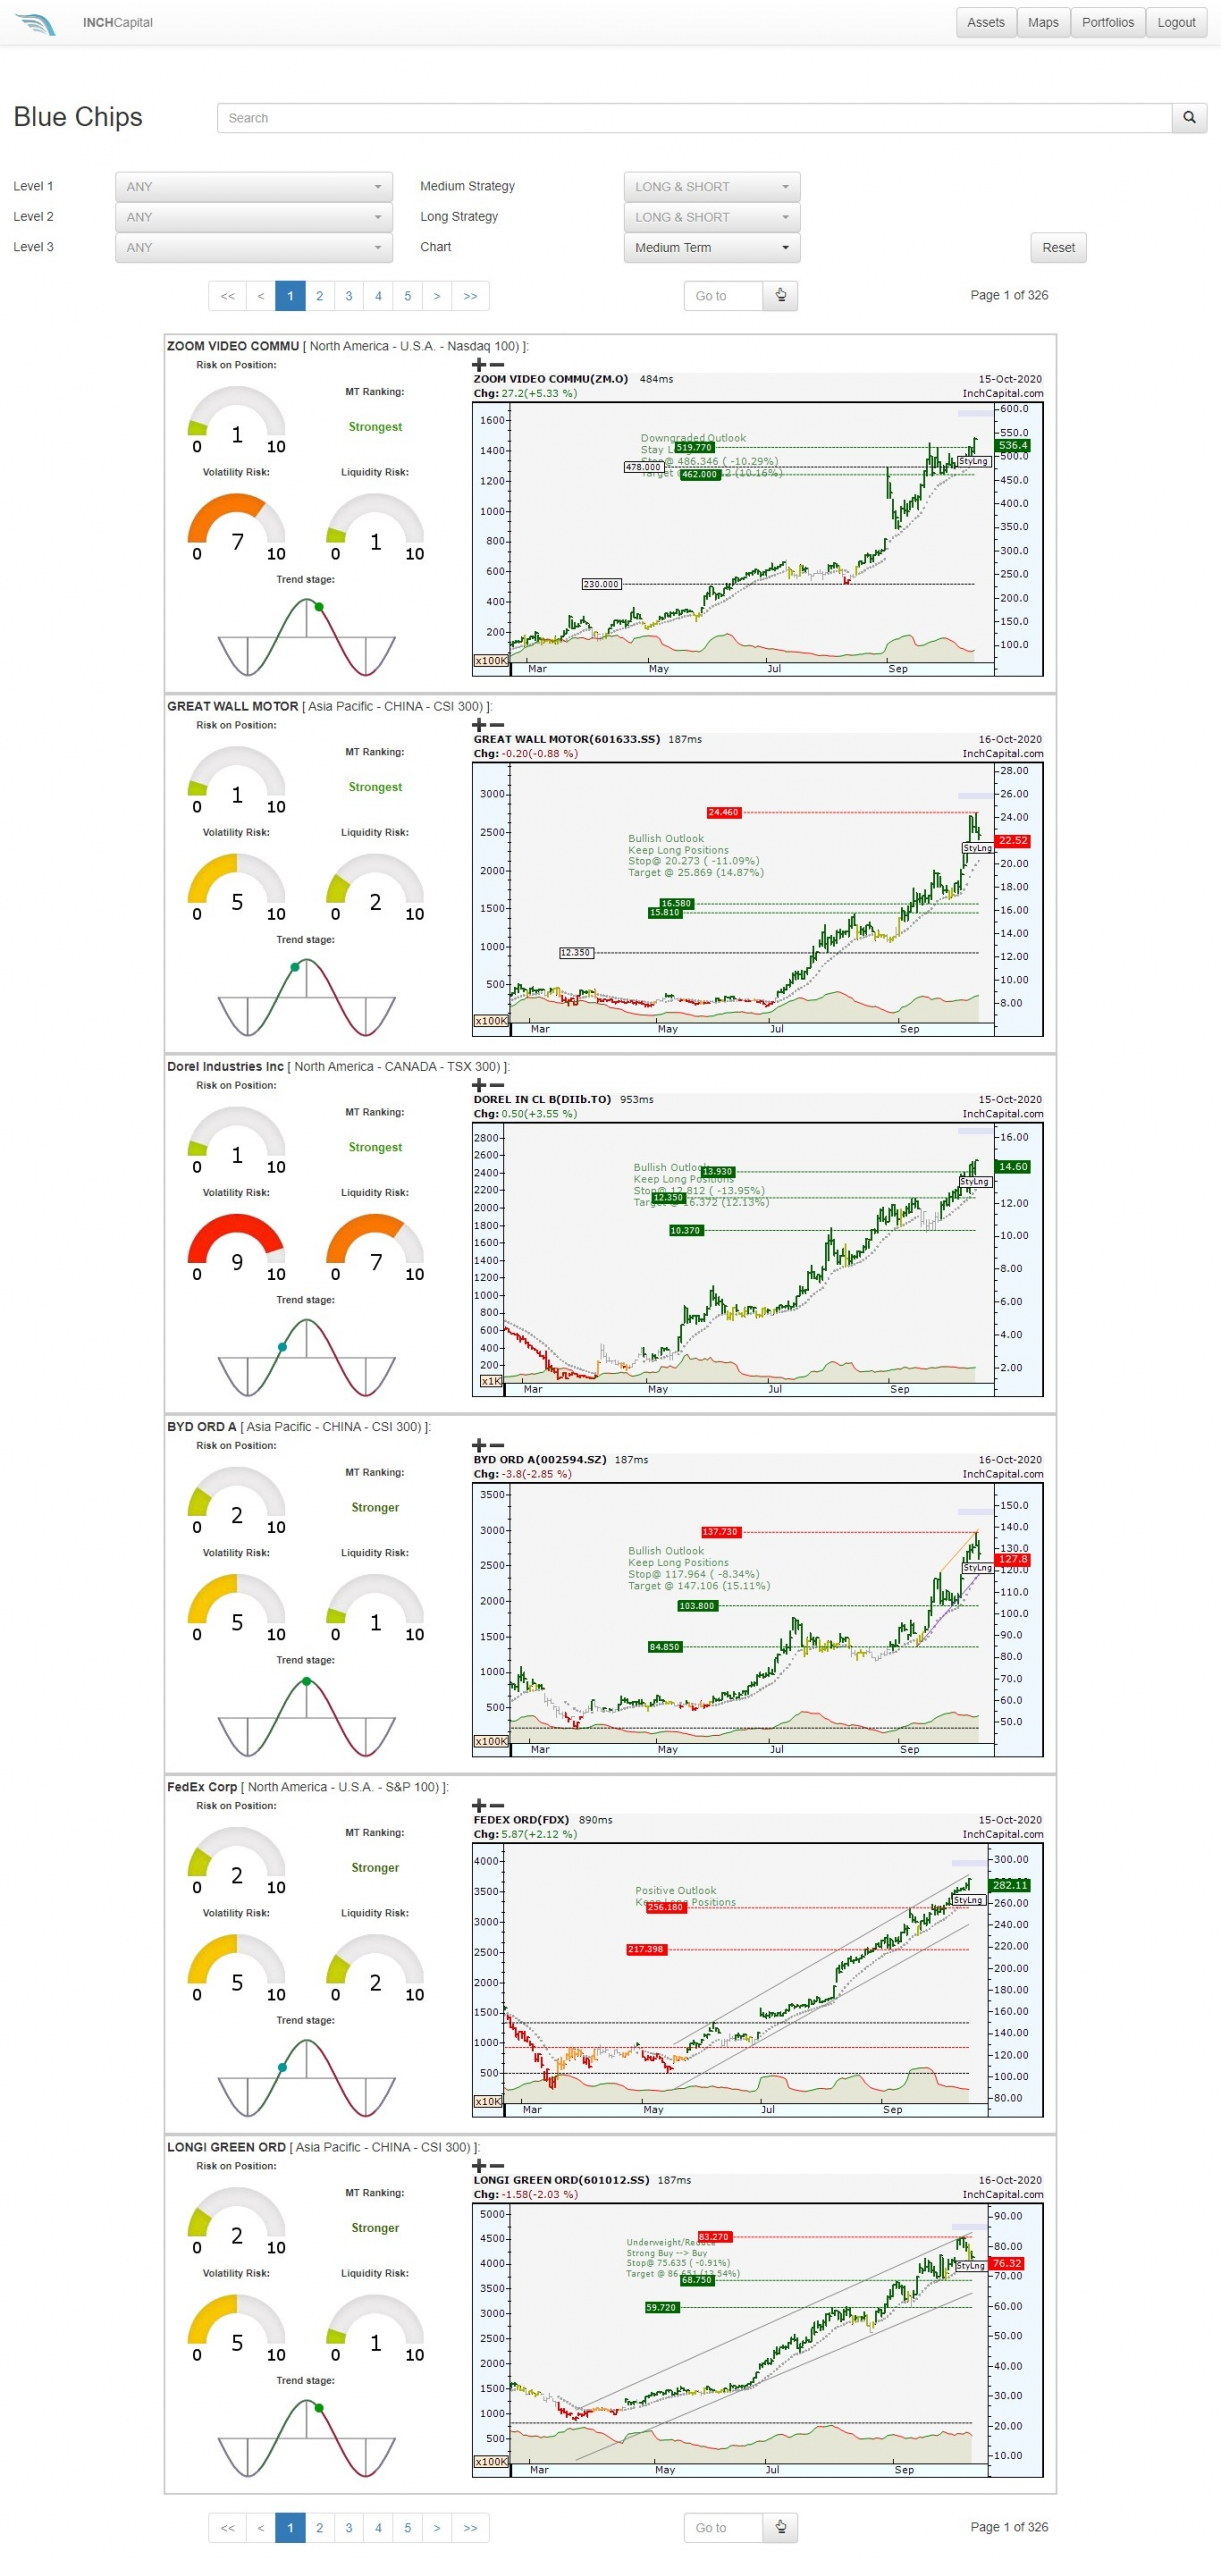 InchCapital Platform - The image shows the top six blue chips in the world listed by trend and momentum force